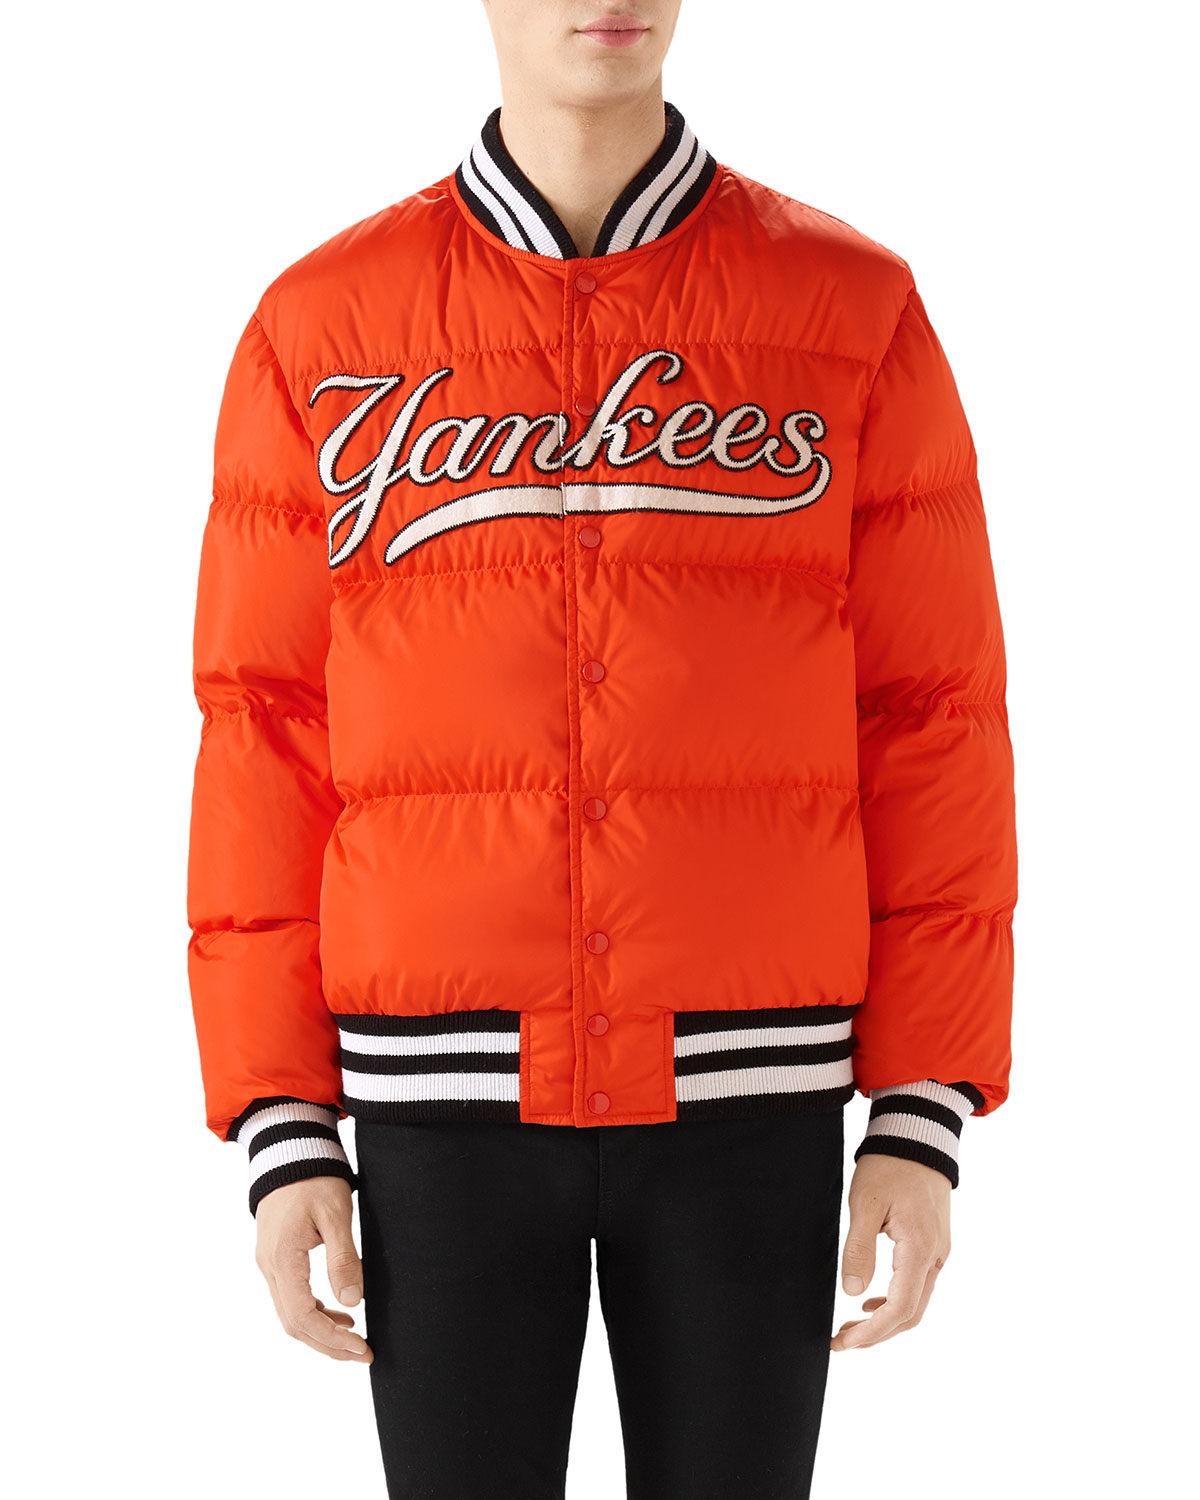 c58b23a64eb7 Gucci Men s New York Yankees MLB Patch Puffer Jacket